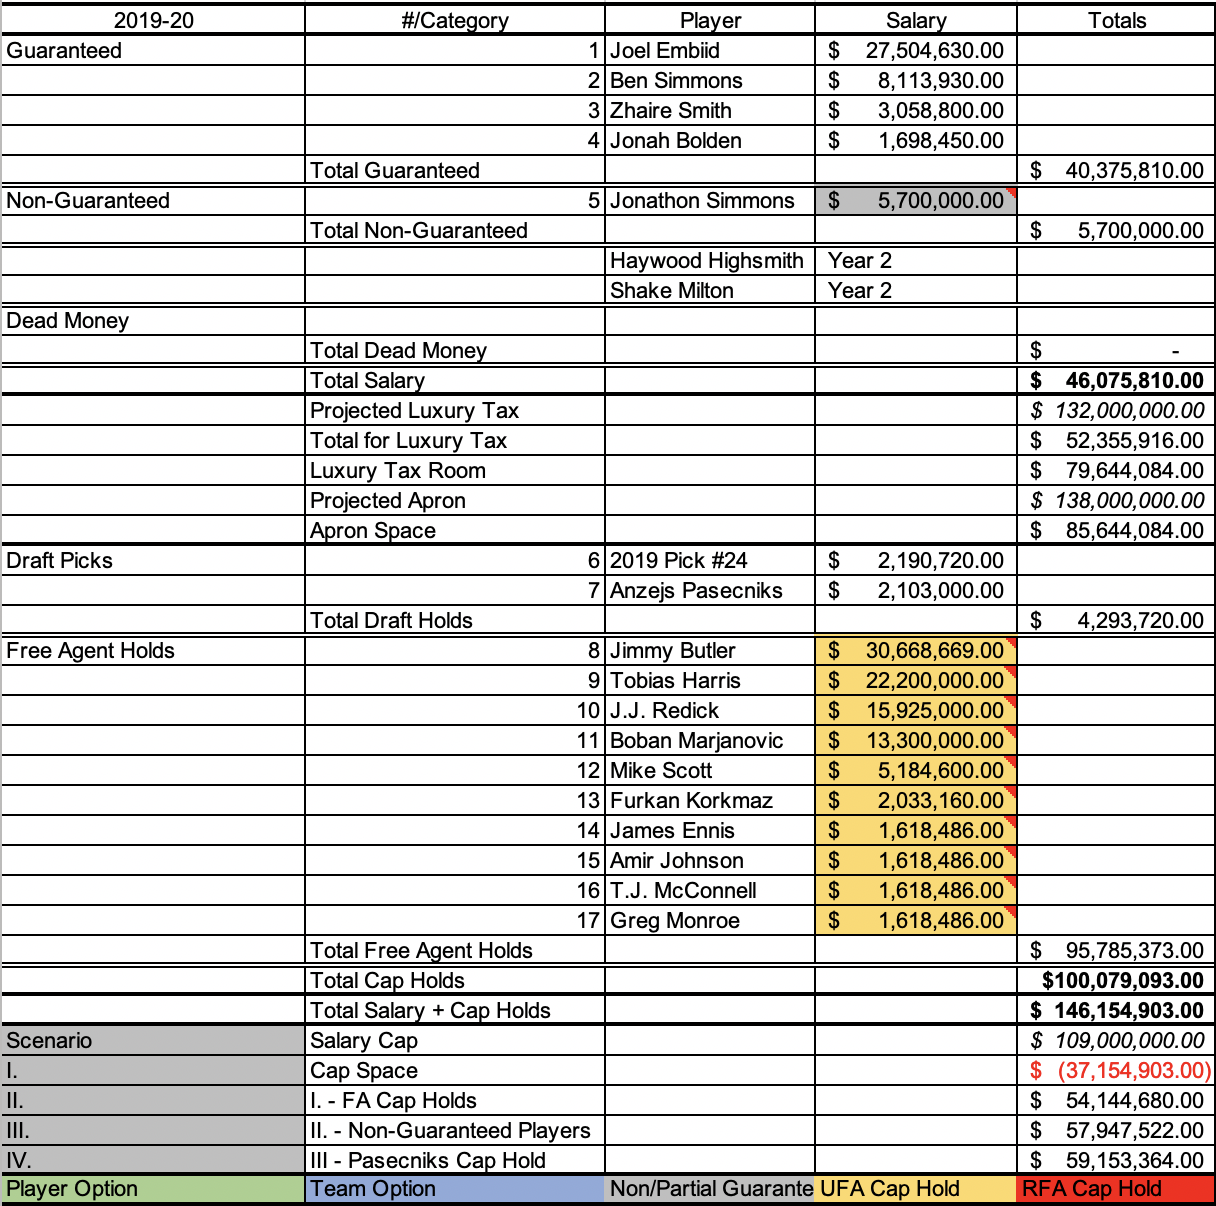 Sixers current 2019-20 payroll